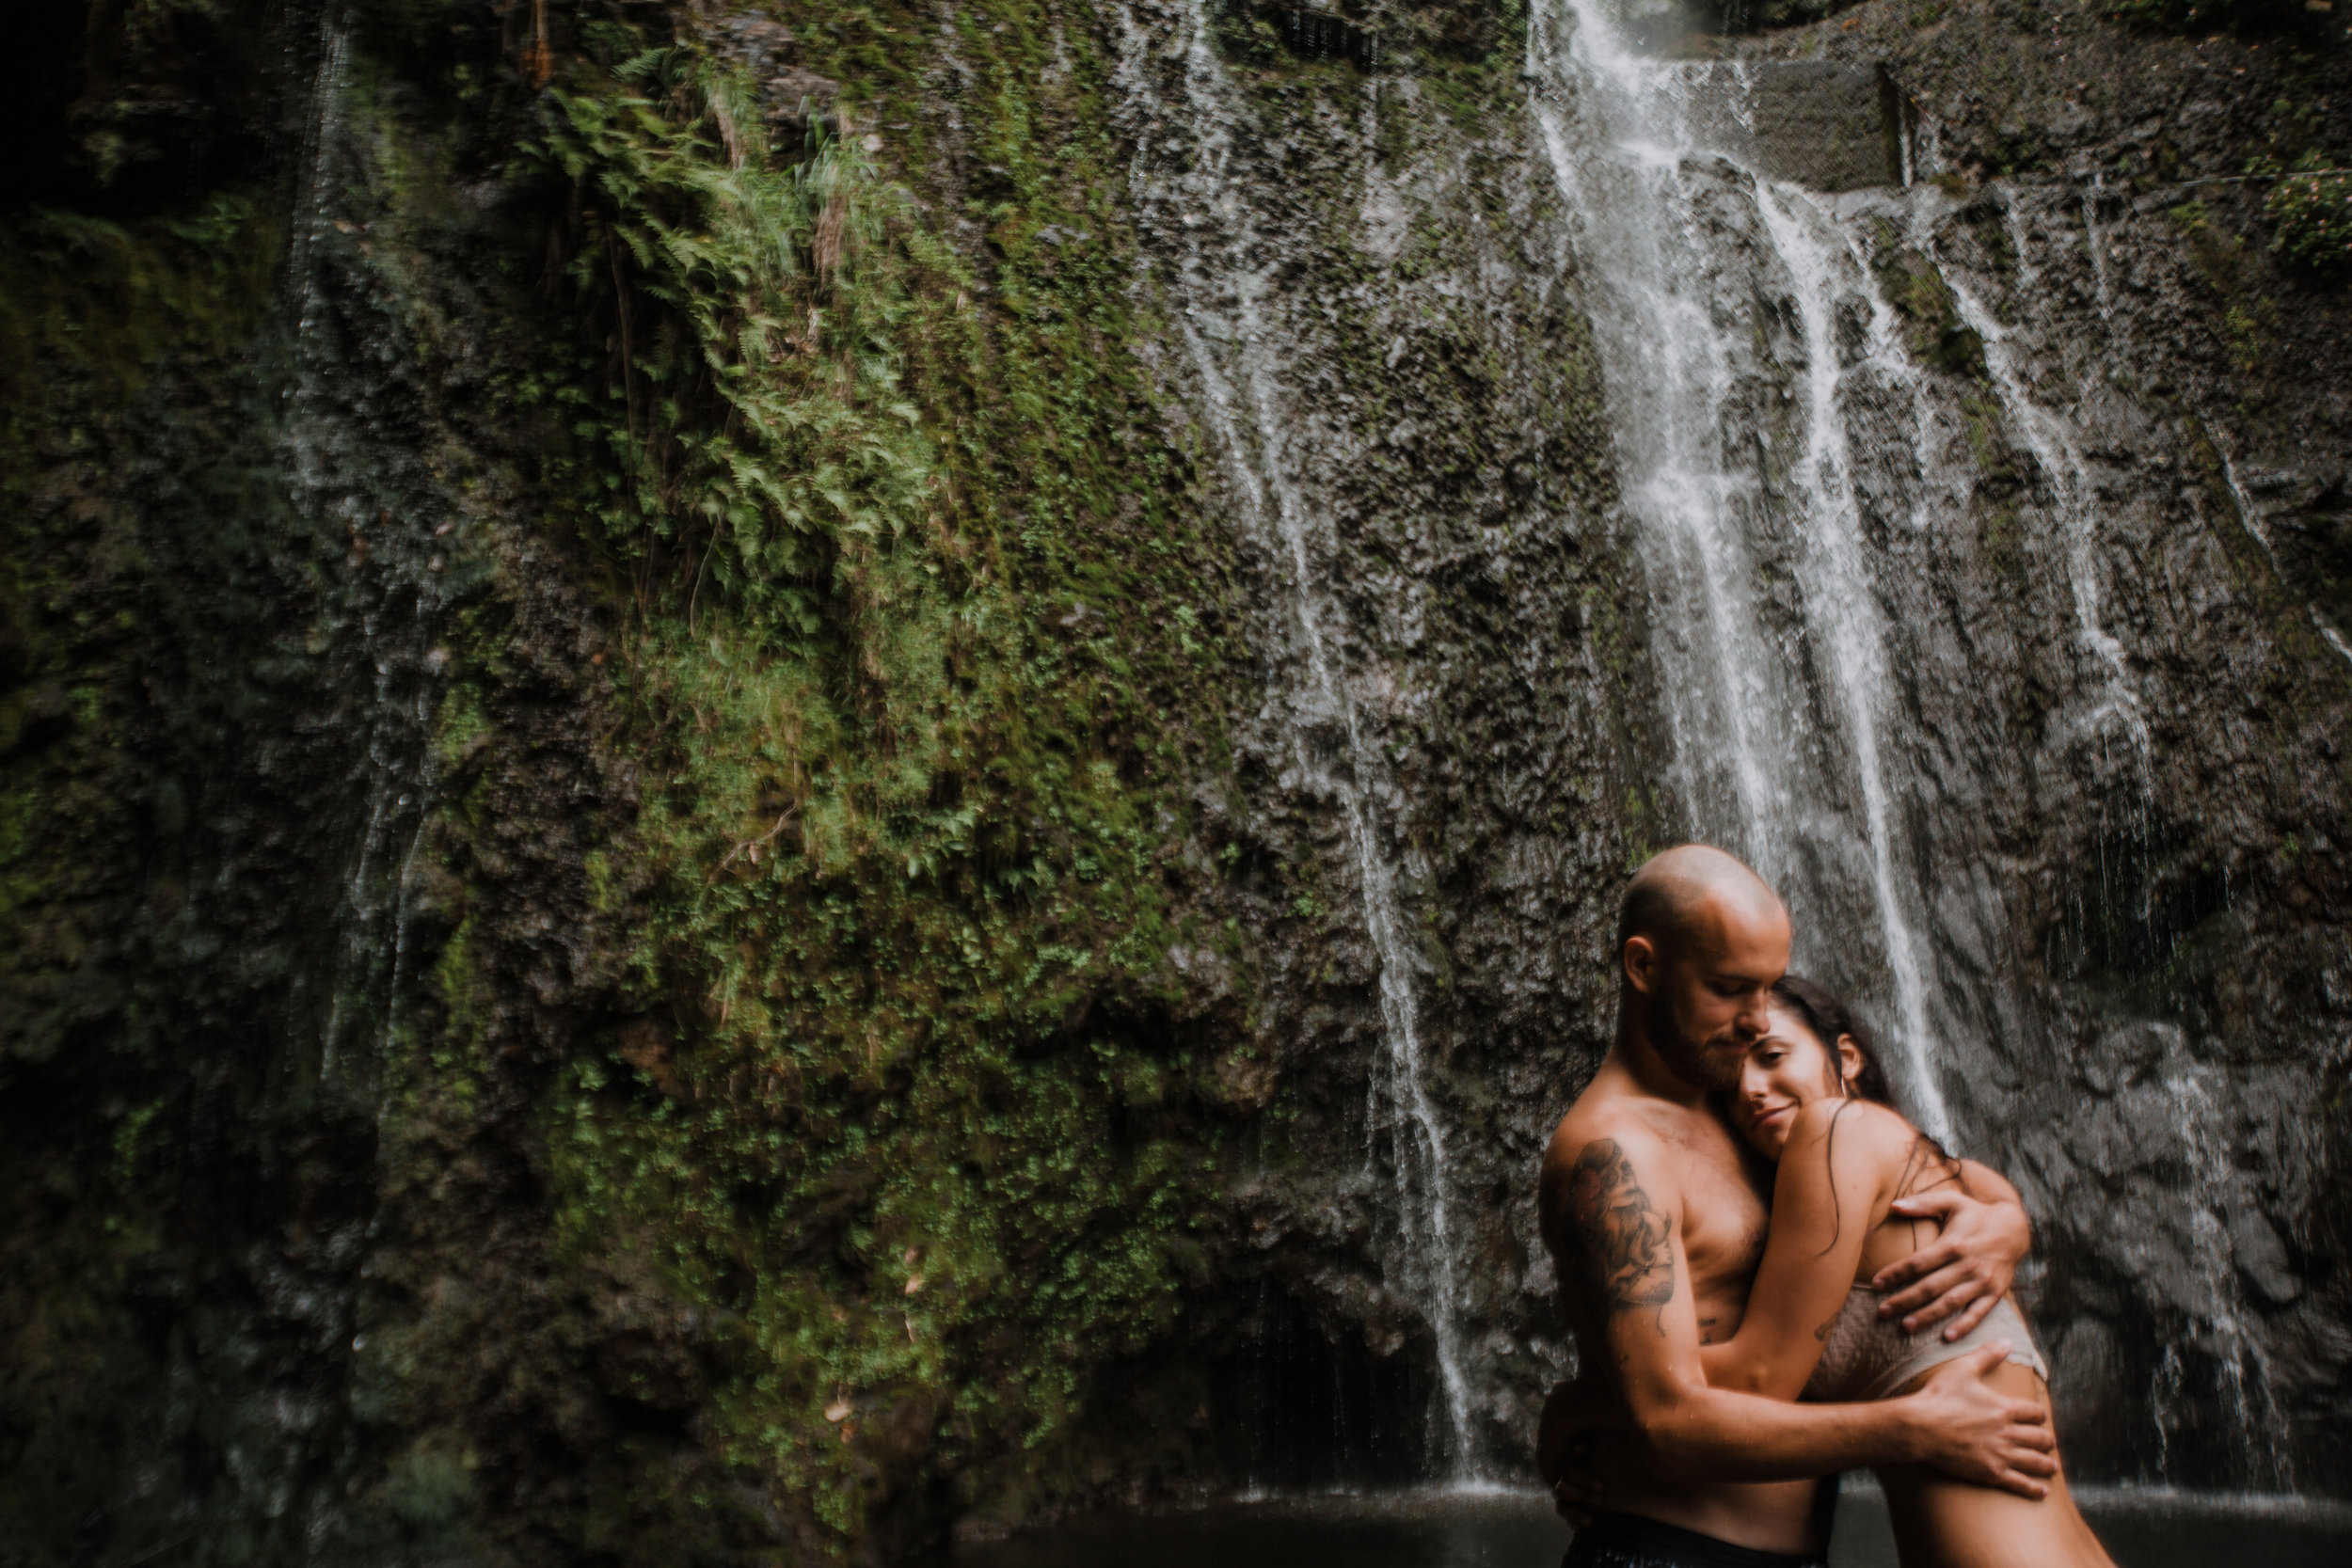 hana maui waterfall engagements, hawaii waterfall, road to hana, maui waterfall, hawaii wedding photographer, hawaii elopement photographer, maui wedding, maui engagements, maui elopement